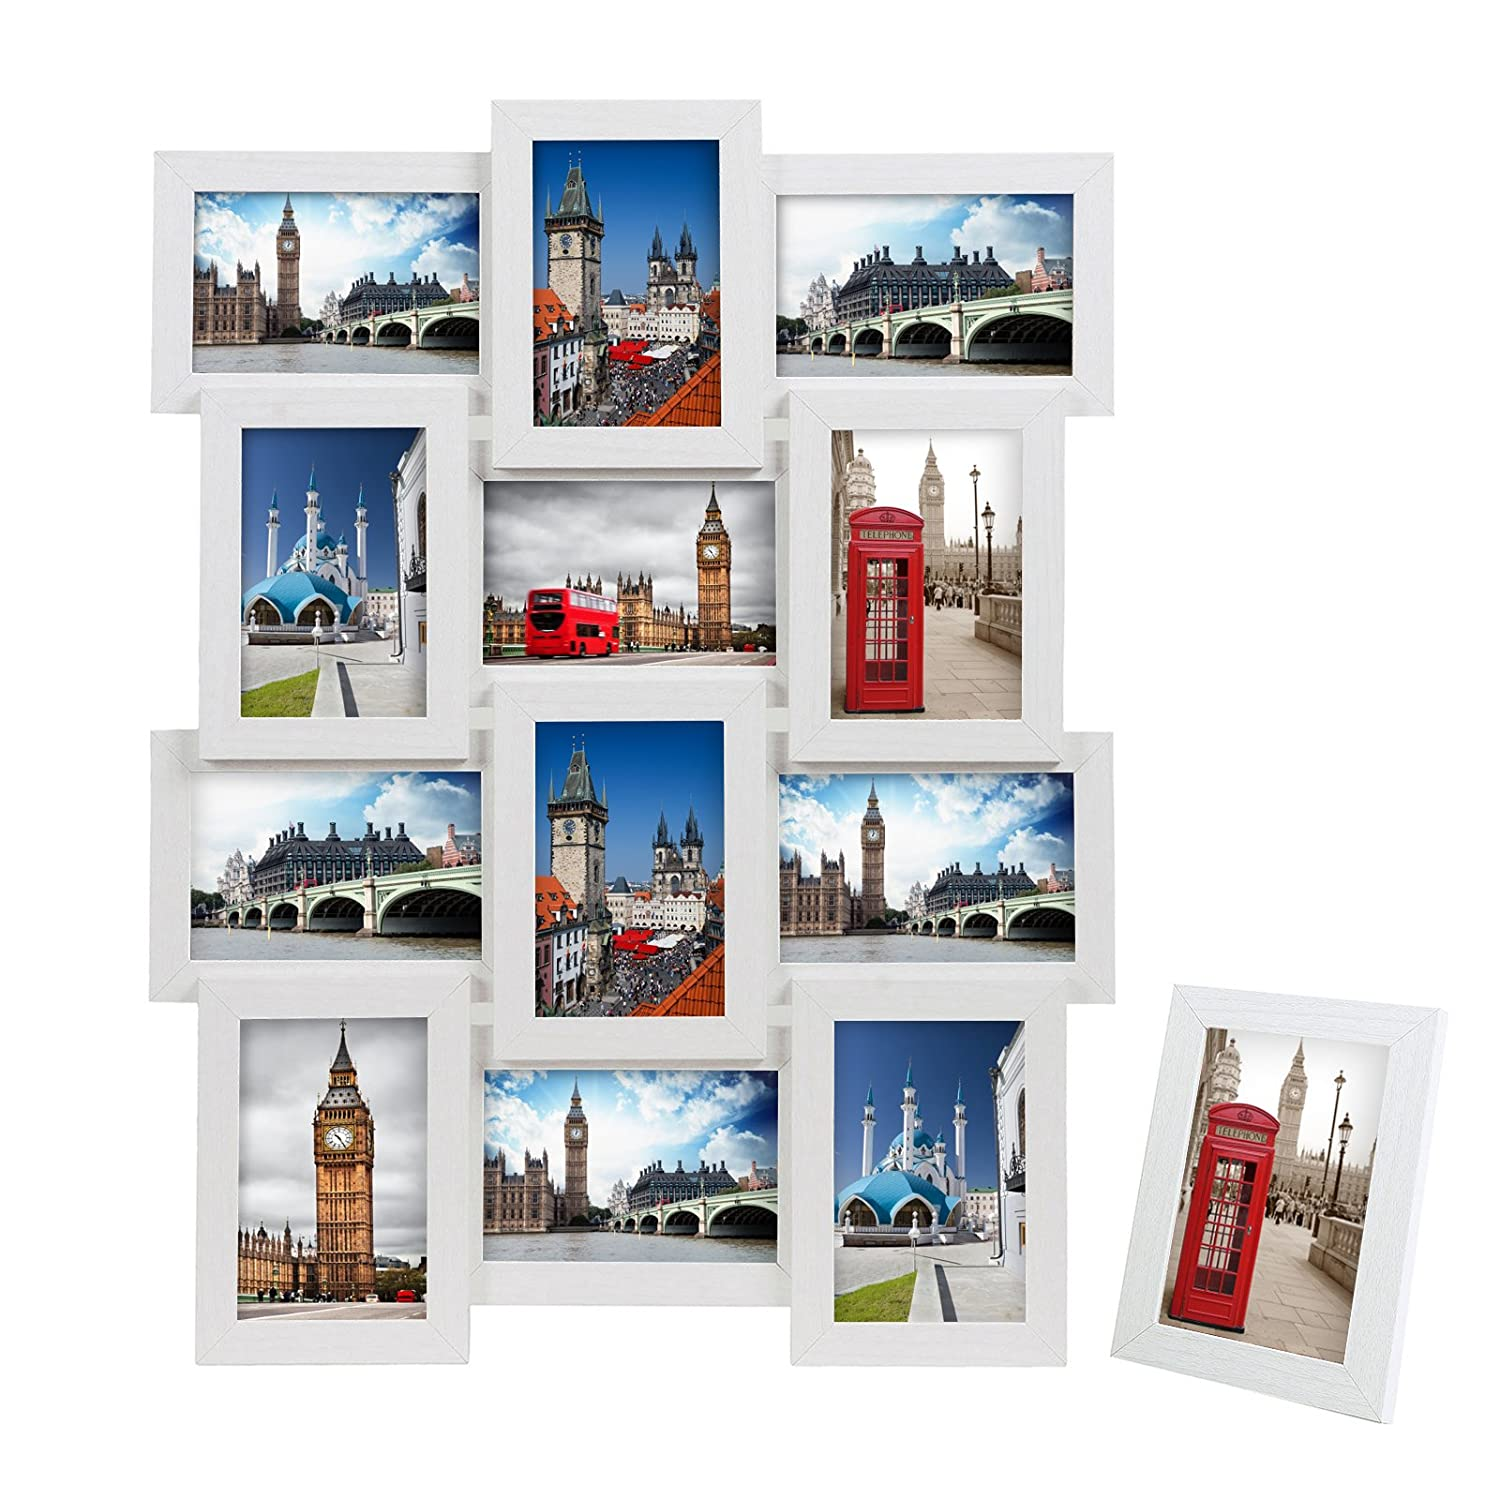 songmics collage picture rahmen for 12 pictures 6 x 4 wall mounted 1 ebay. Black Bedroom Furniture Sets. Home Design Ideas